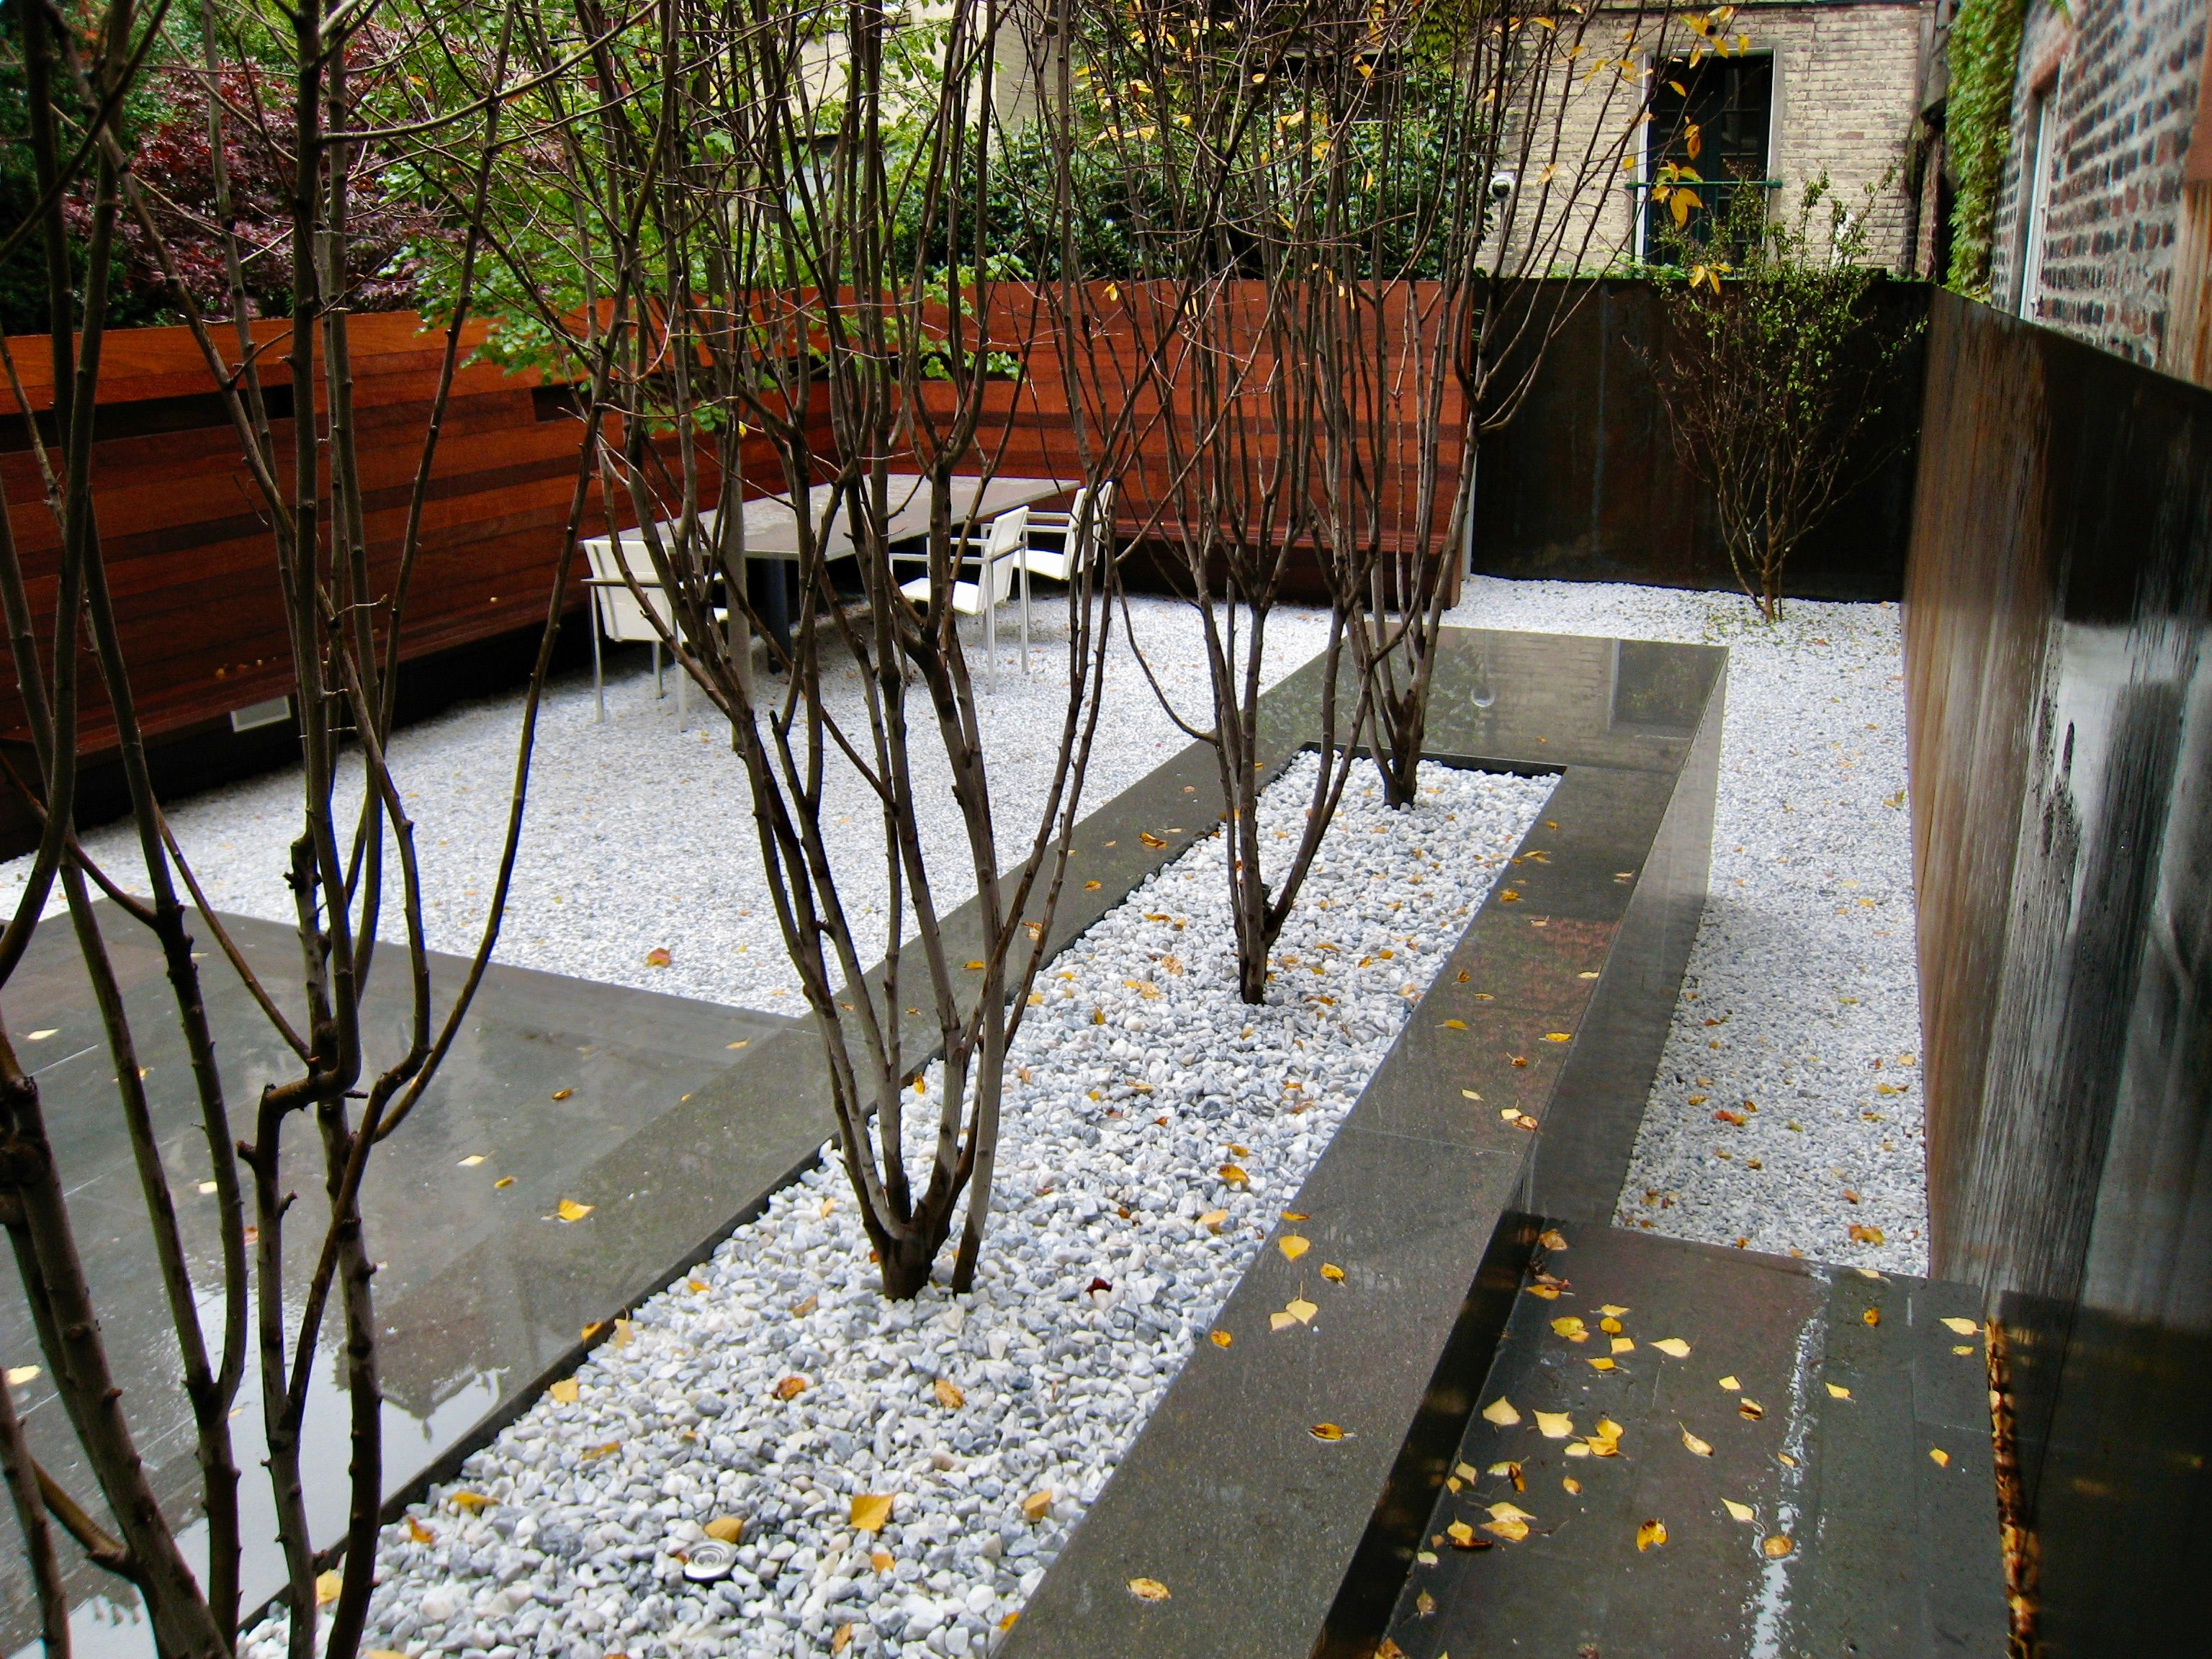 Washington Square Townhouse Garden